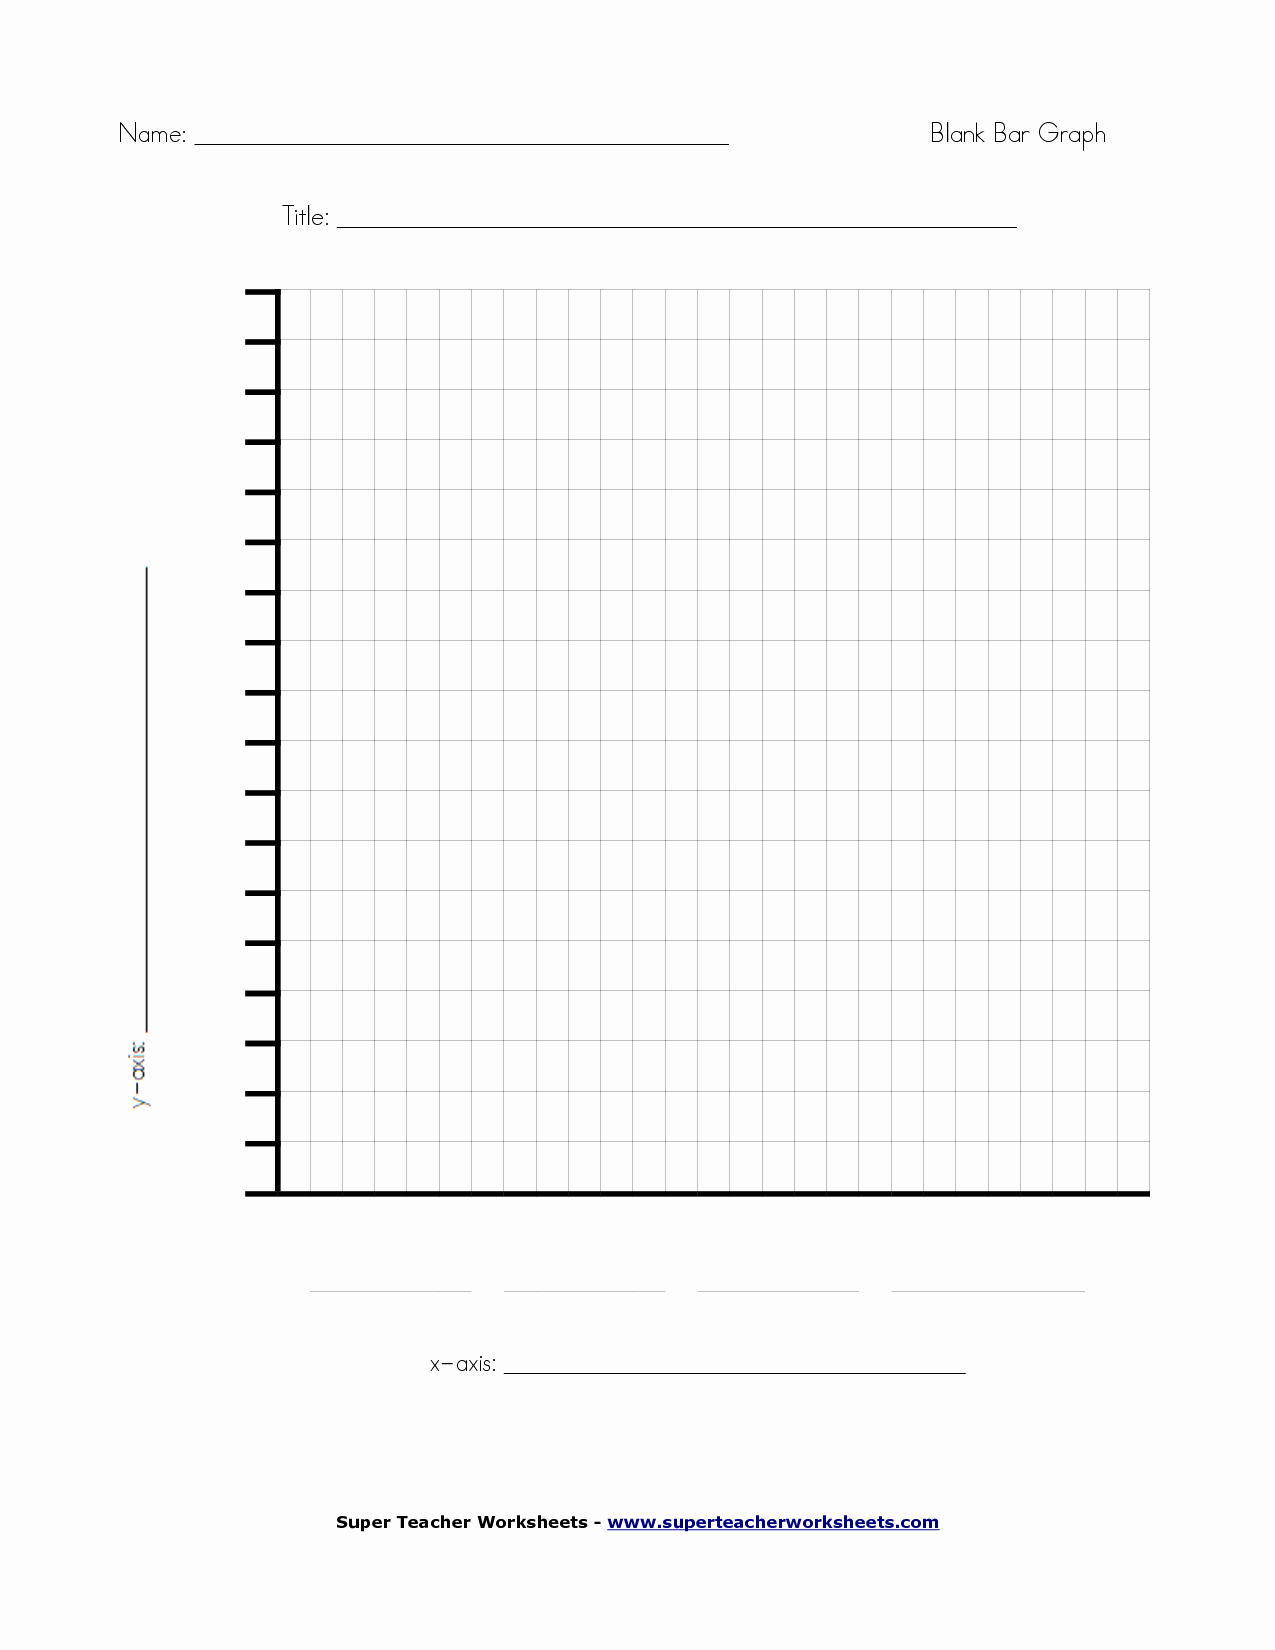 6 Best Of Fill In Blank Printable Graph Blank Bar